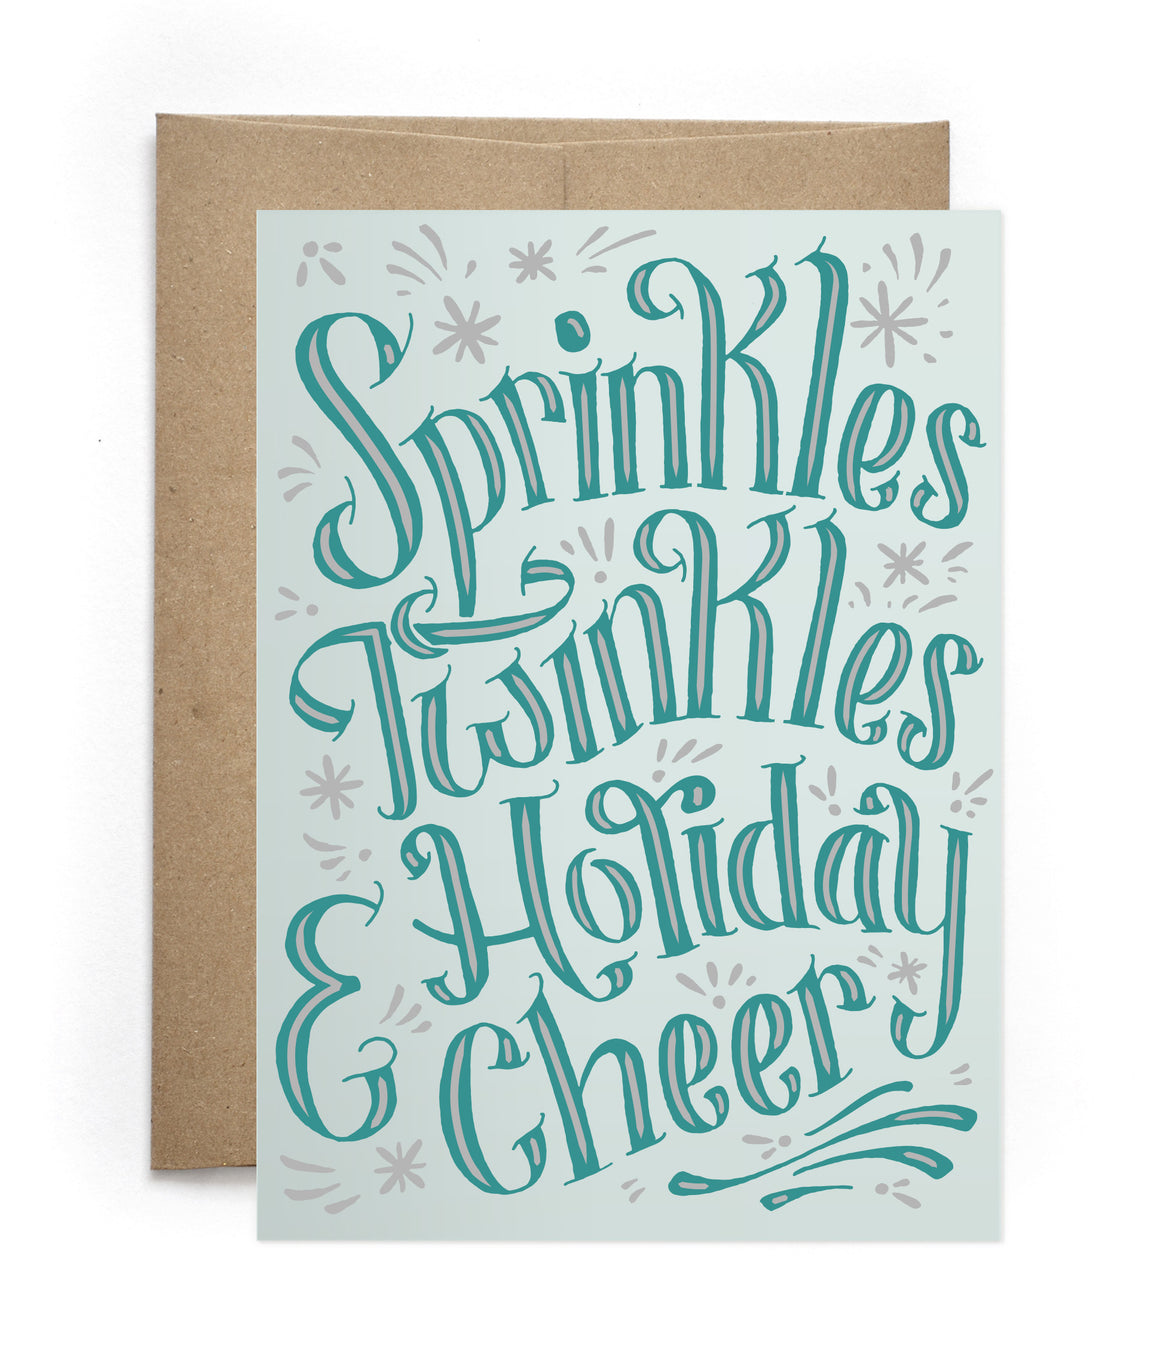 Sprinkles Holiday Greeting Card